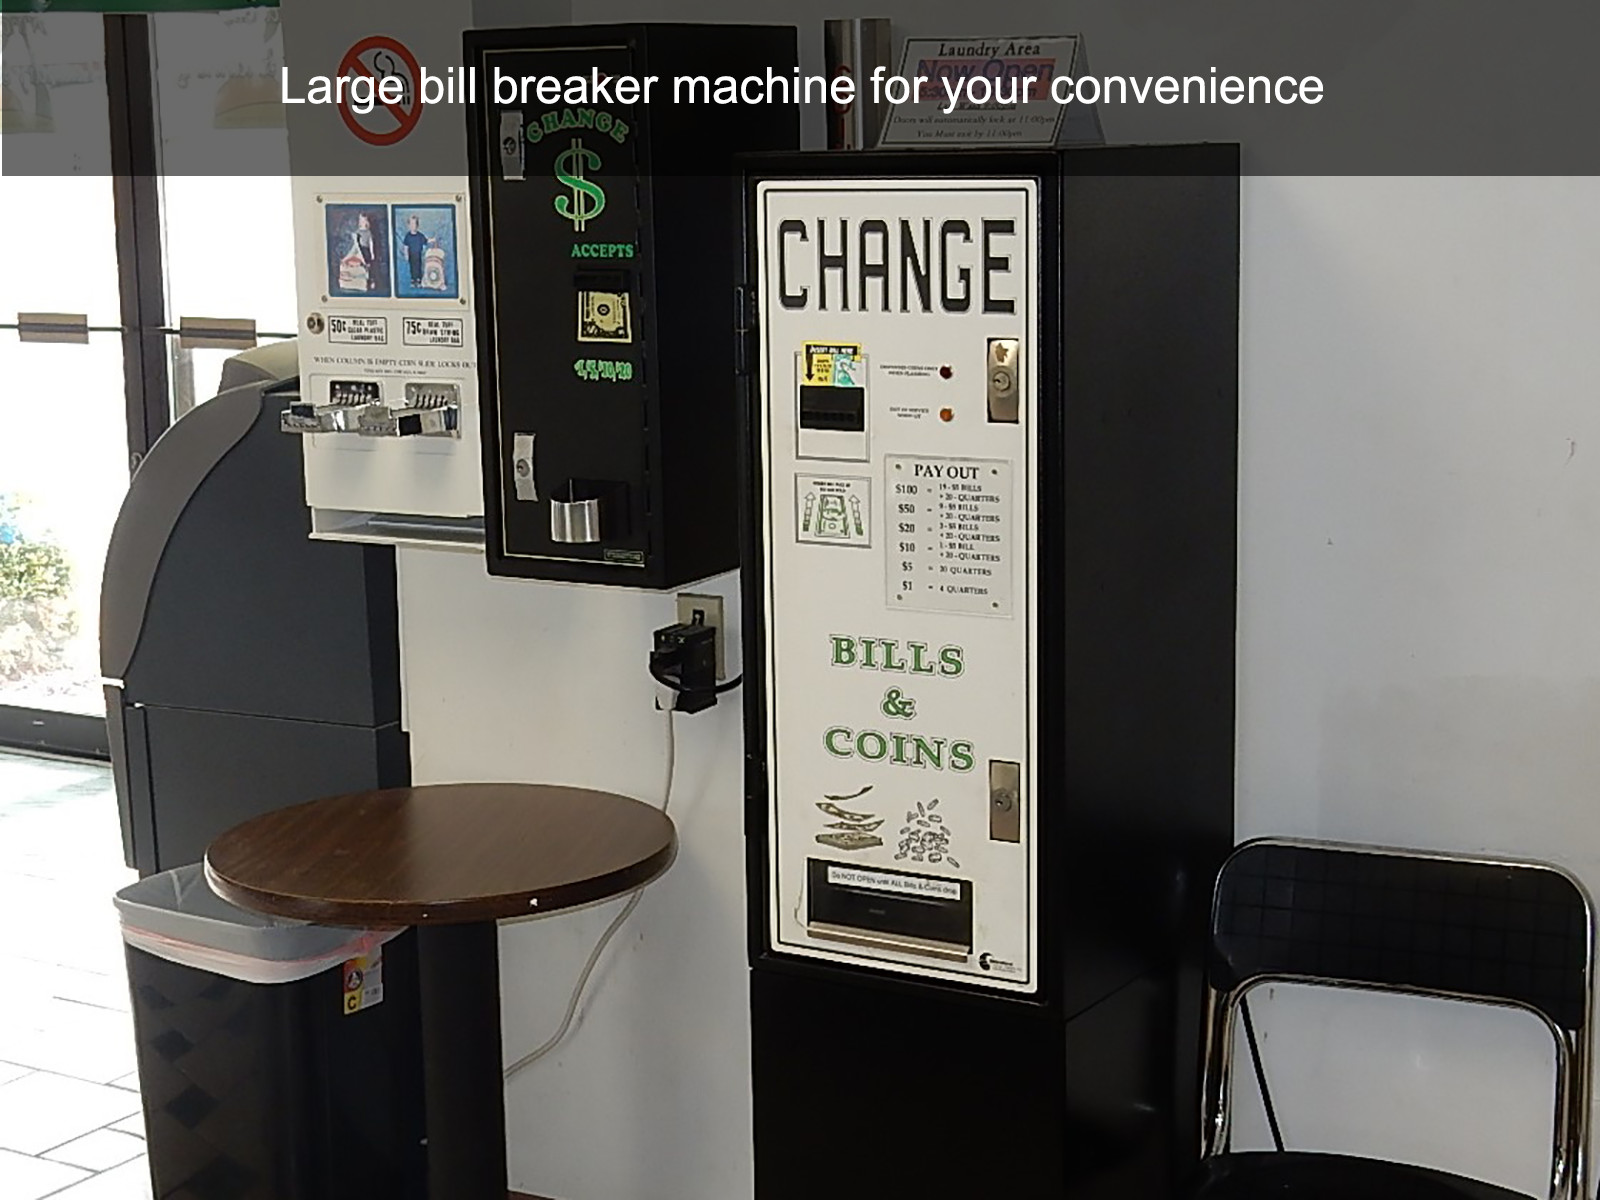 Large bill breaker machine for your convenience